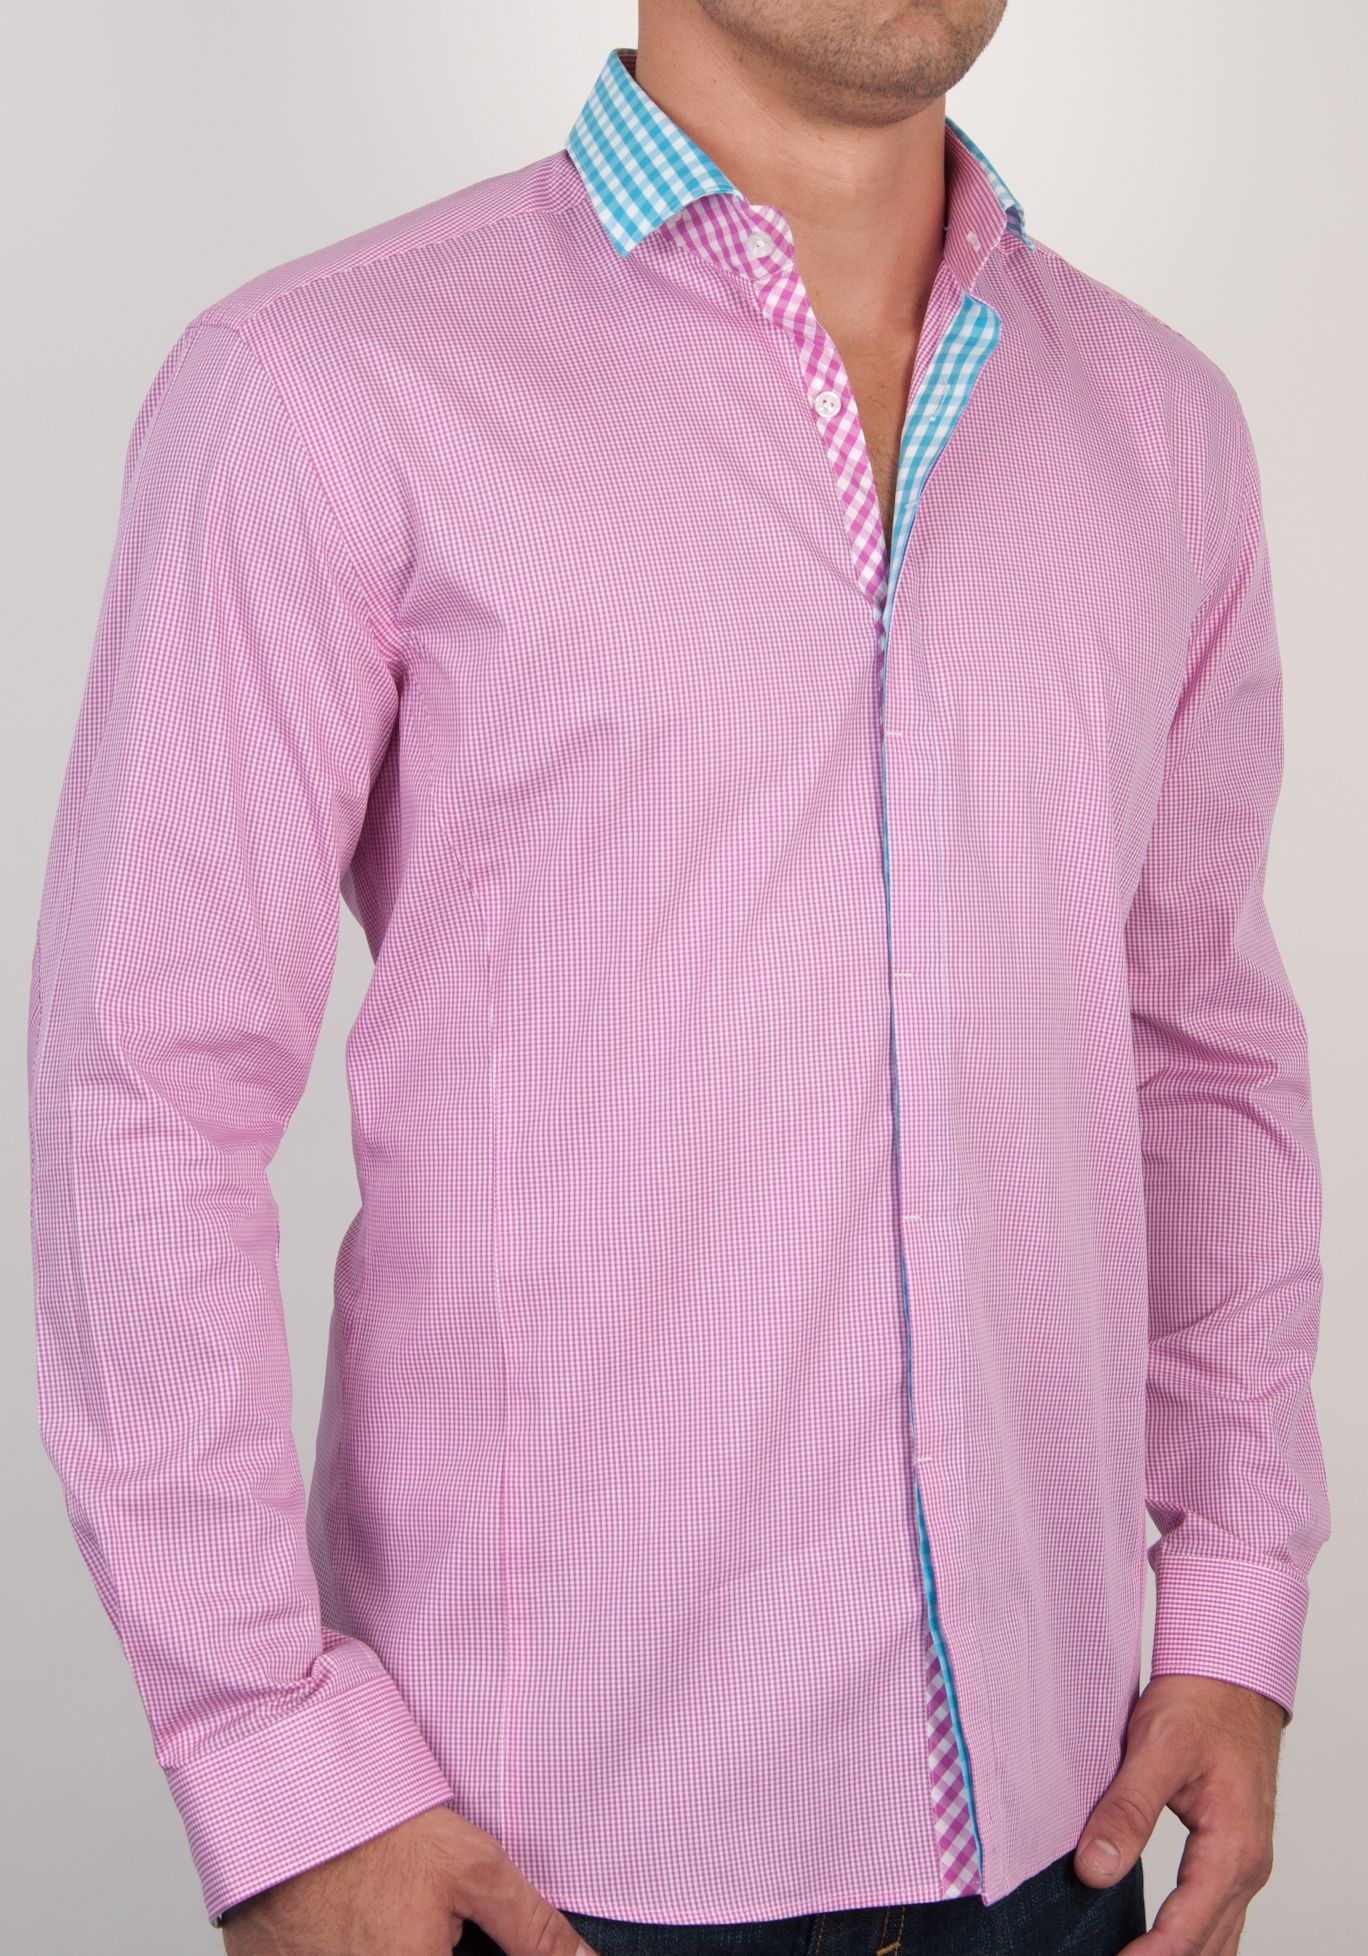 Fuchsia gingham button down shirt with turquoise check trim ...